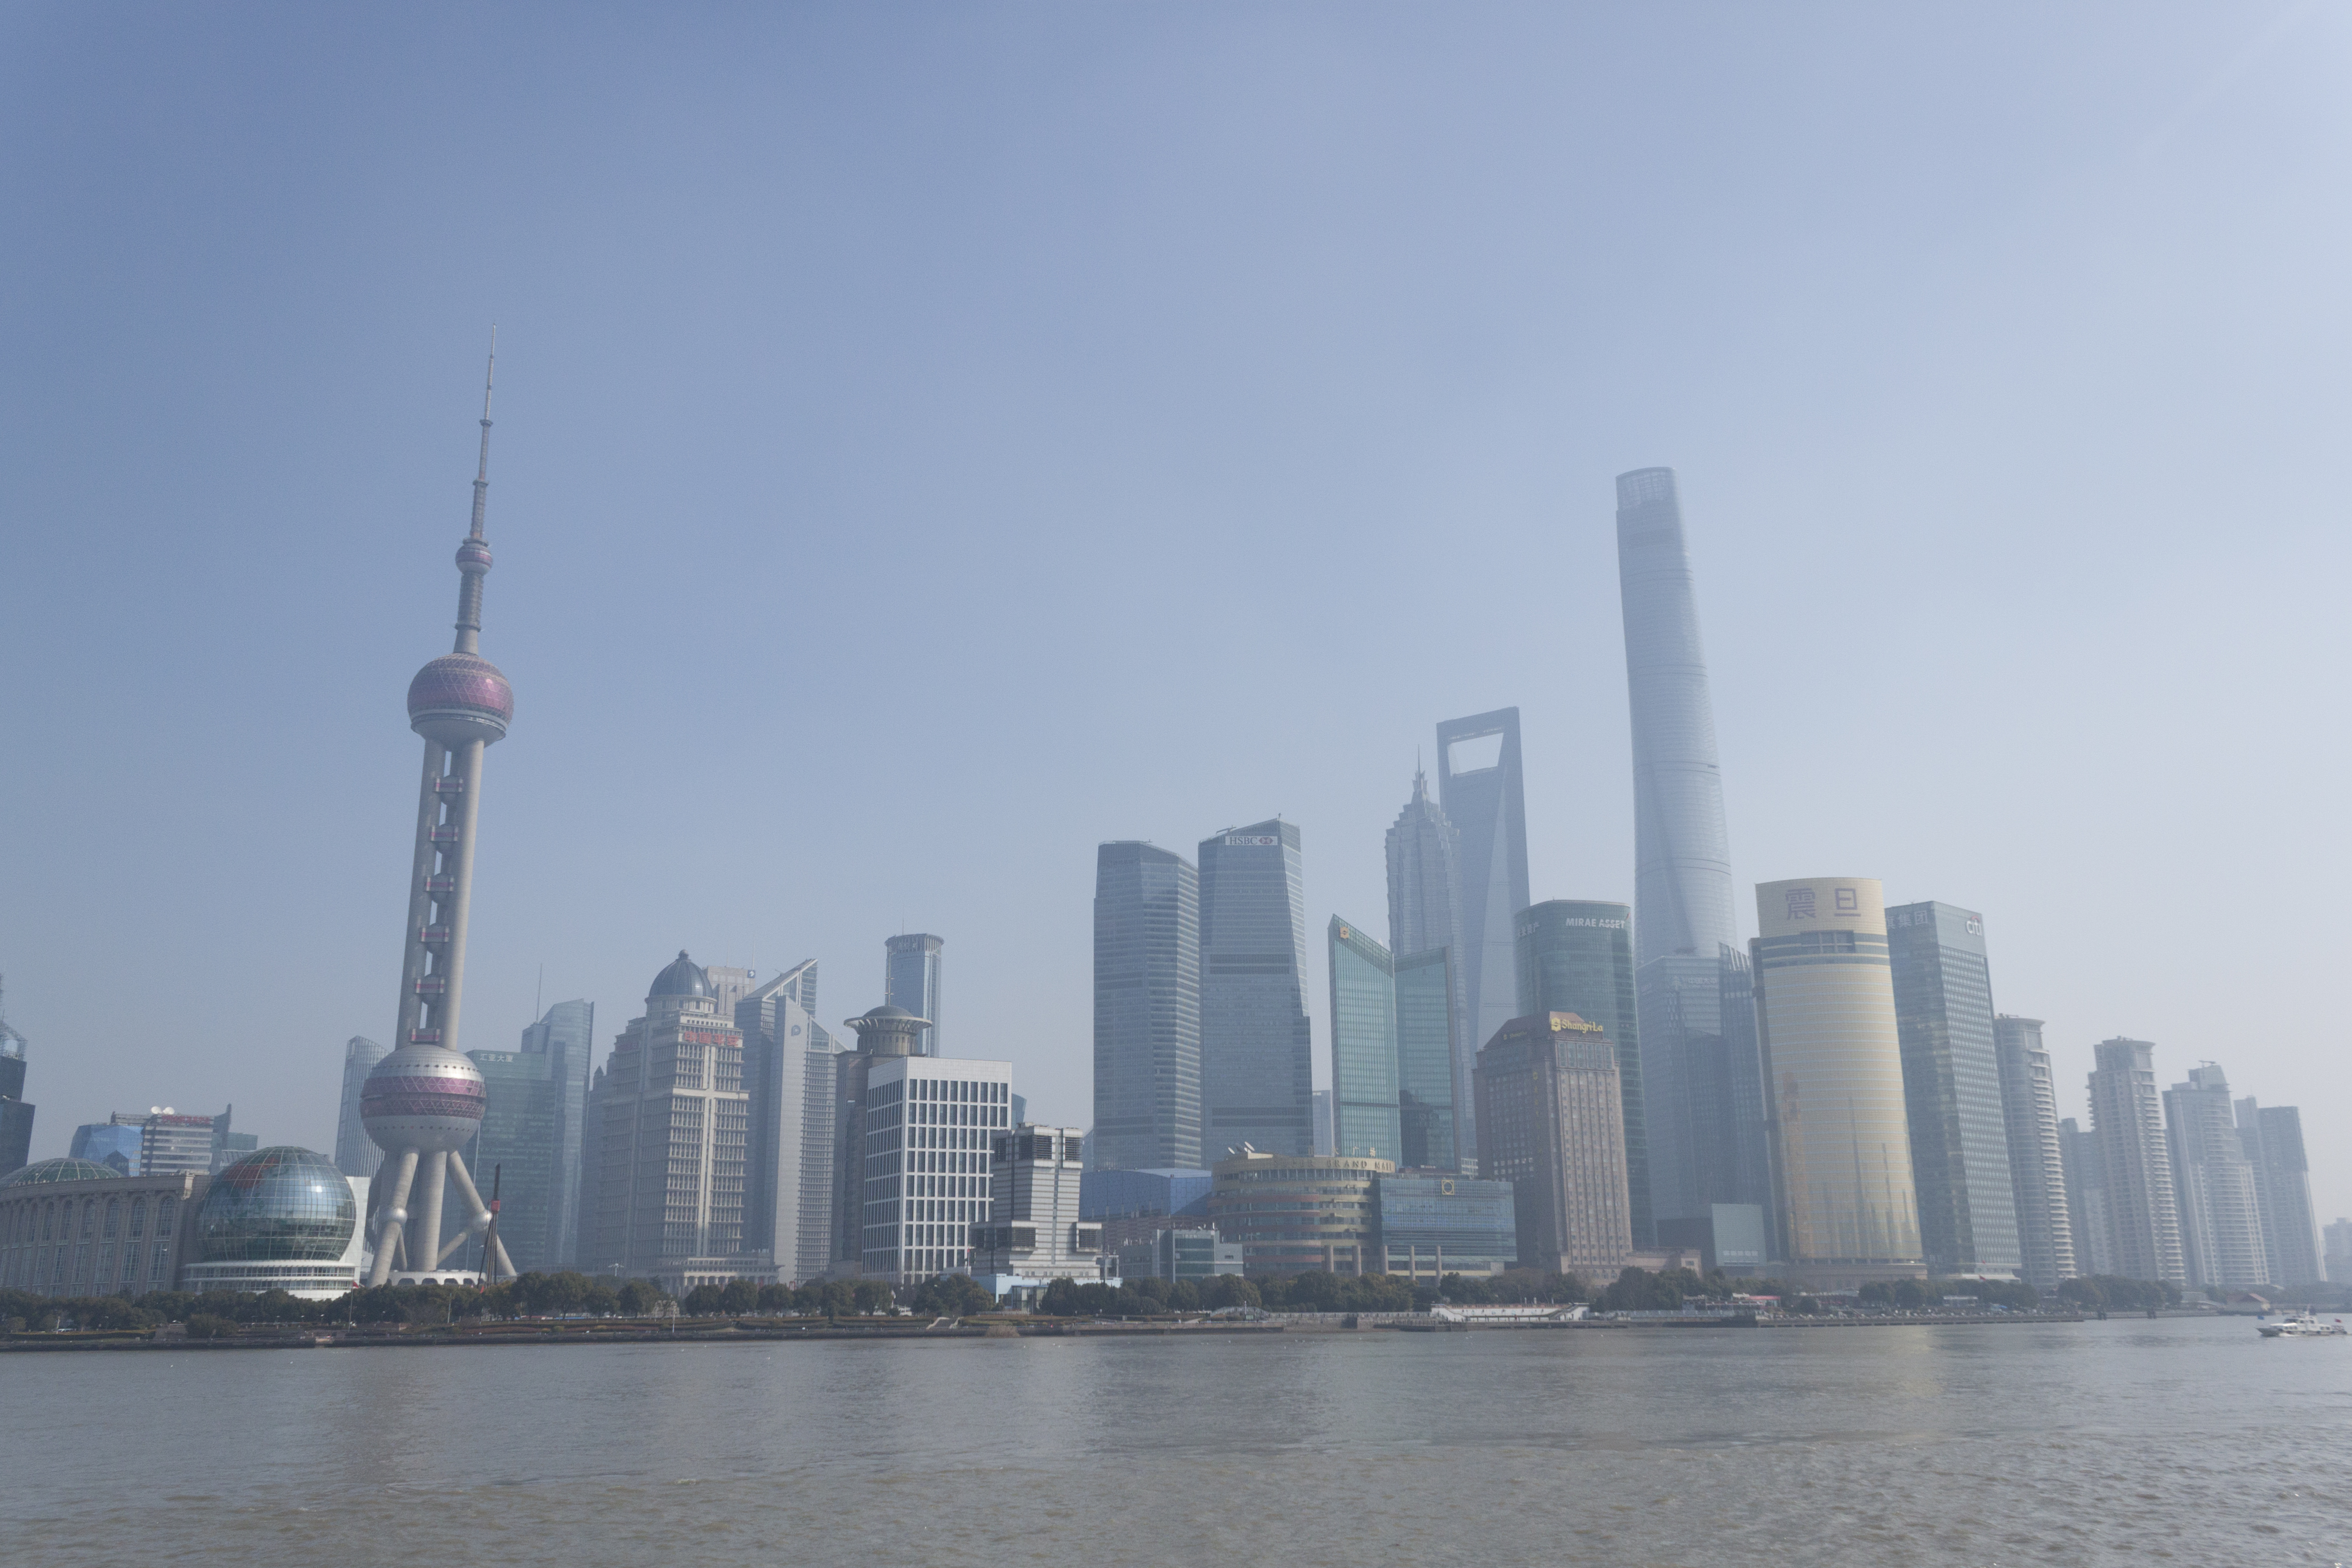 Shanghai on a Good Day